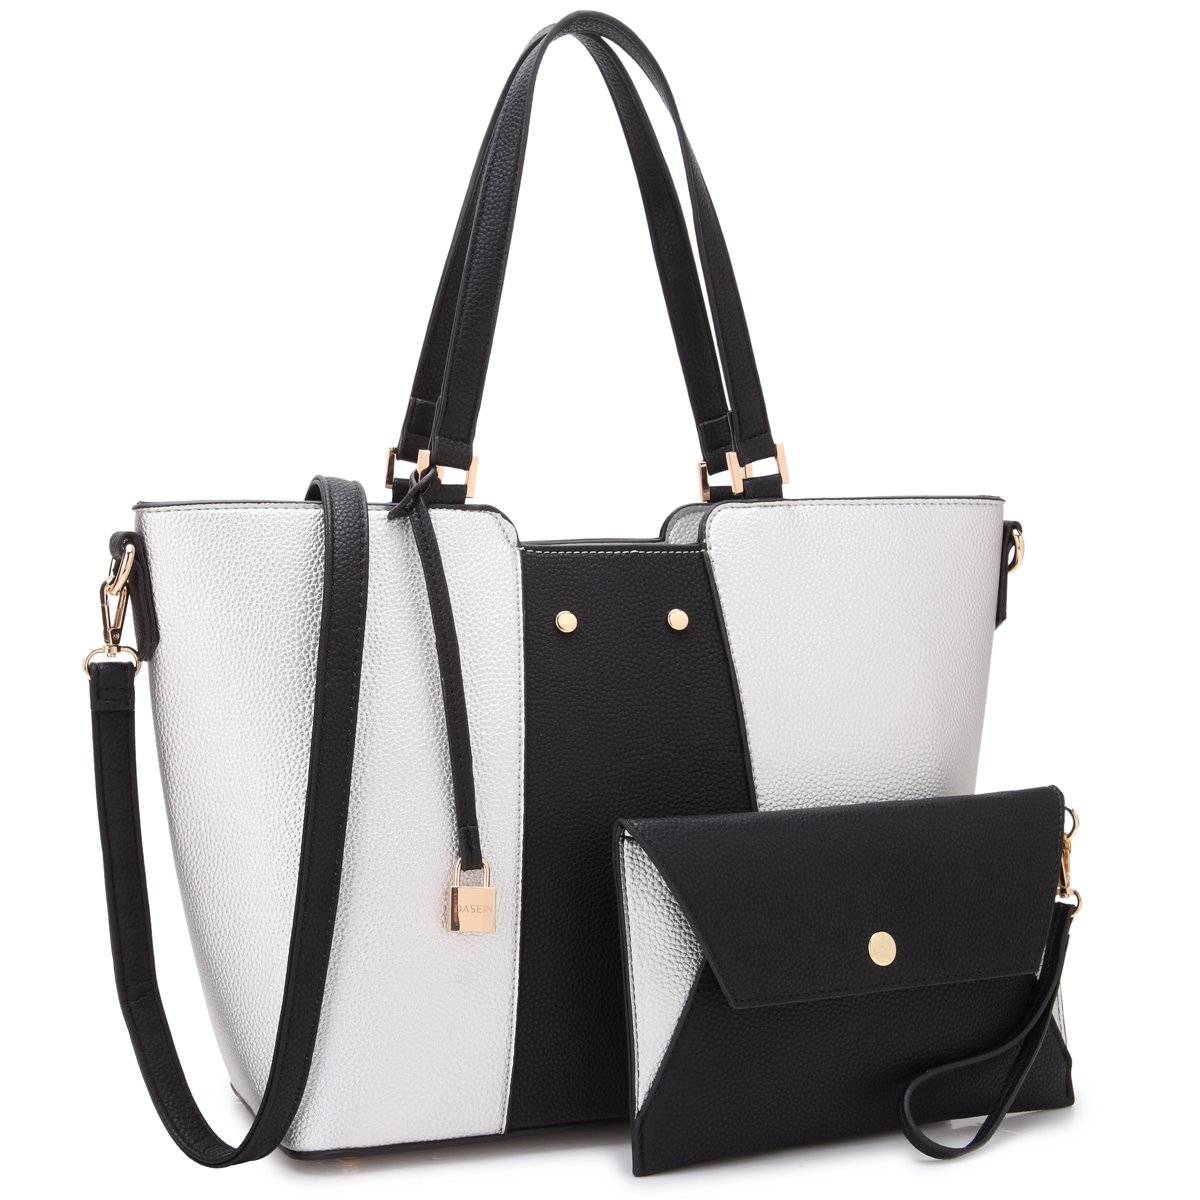 MMK collection Fashion Women Purses and Handbags Ladies Designer Satchel Tote Bag Shoulder Bags and coin purse(19-7608-SL/BK)